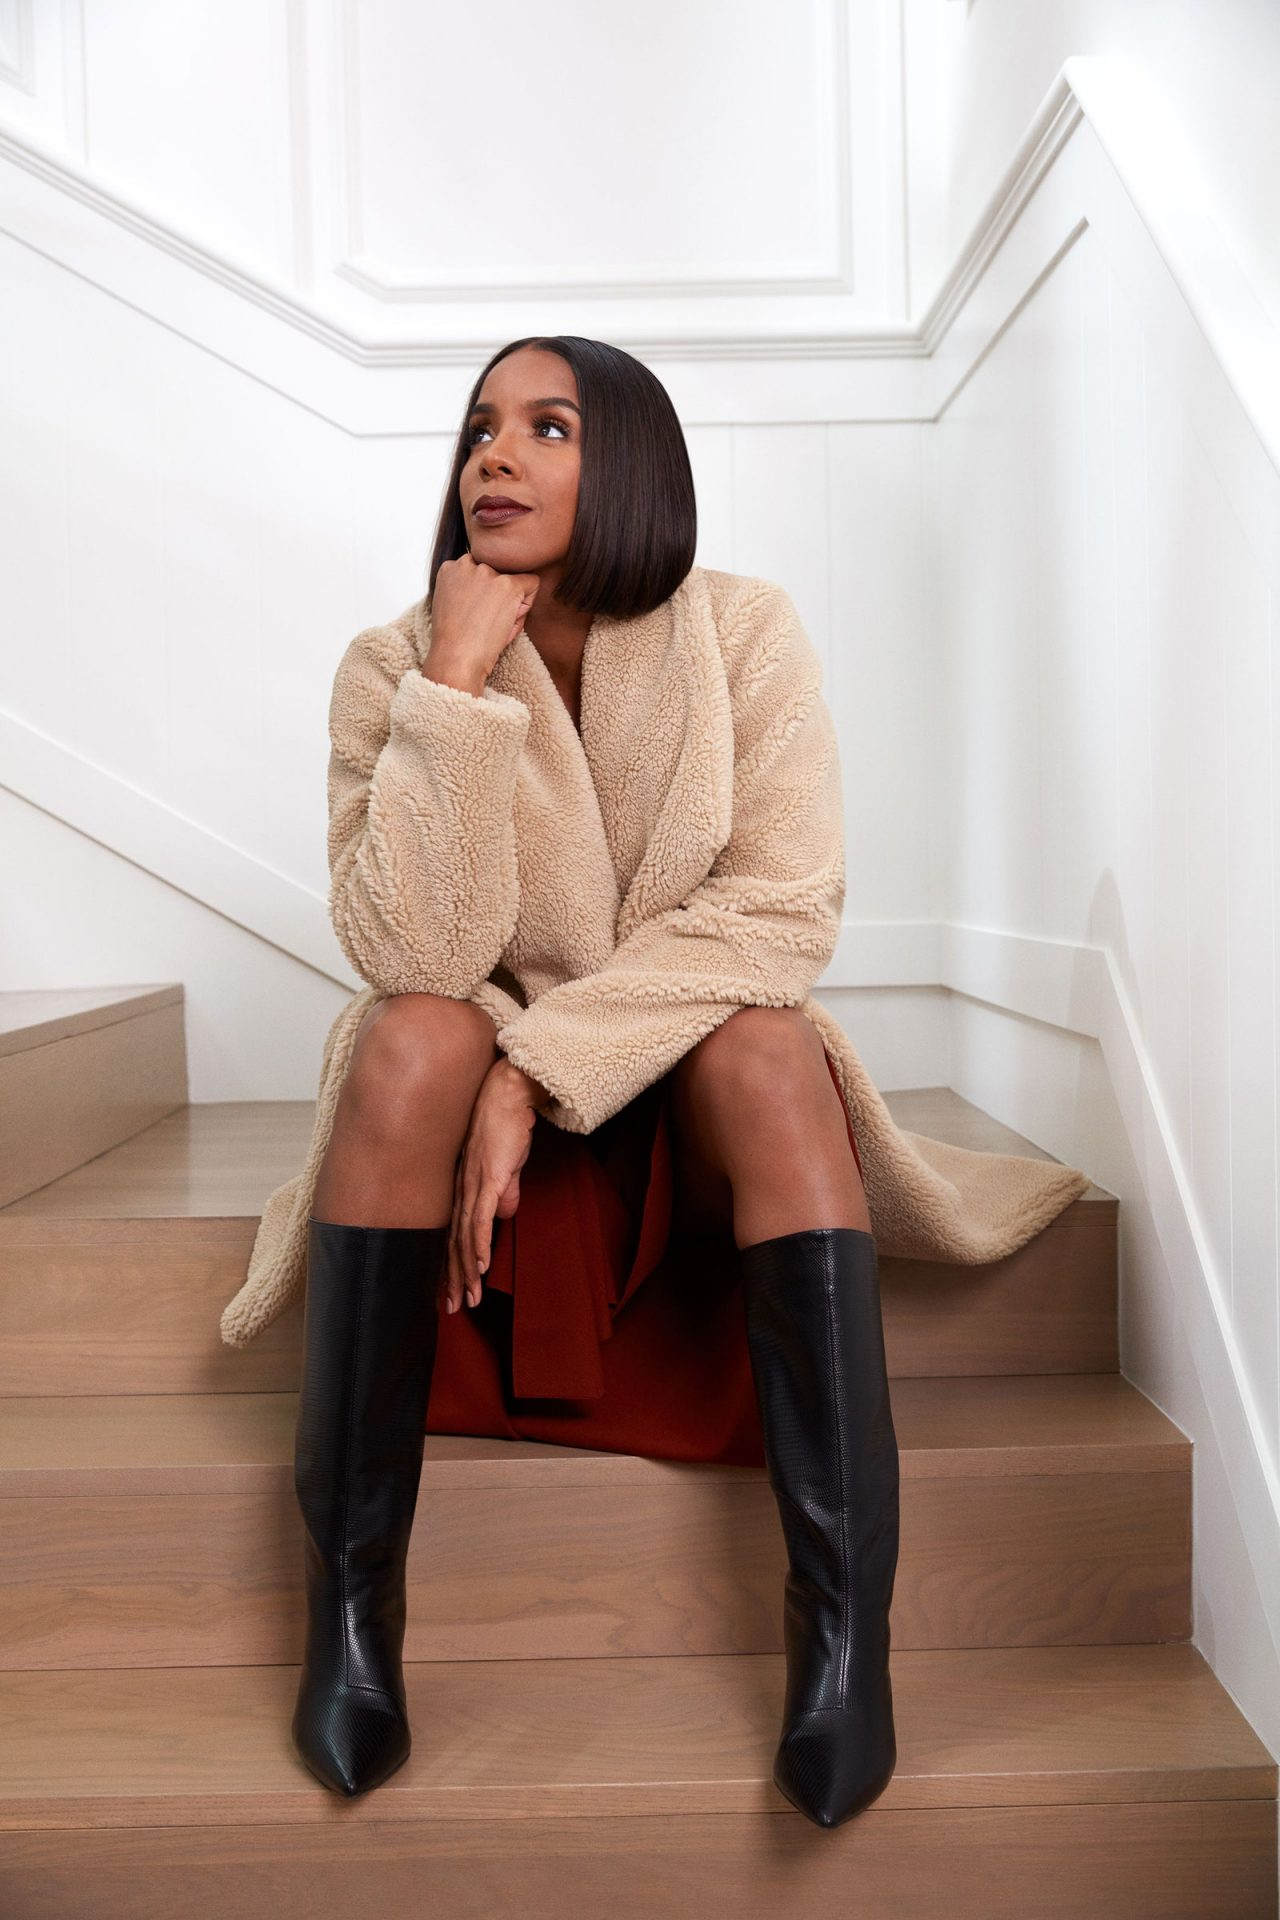 JustFab Announces Global Partnership with Kelly Rowland